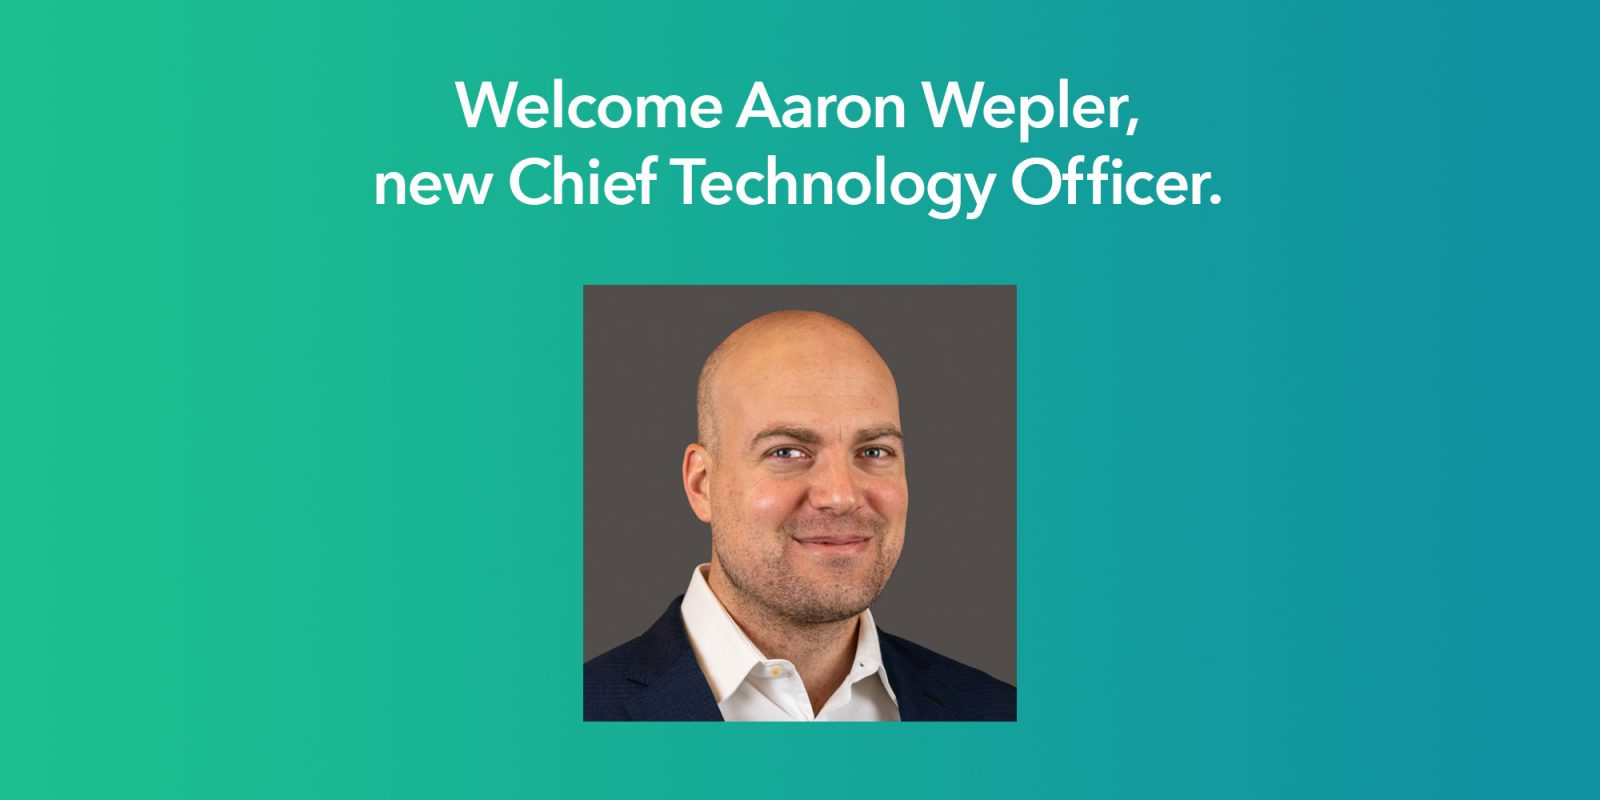 Aaron Wepler, new Chief Technology Officer, joins MFour.